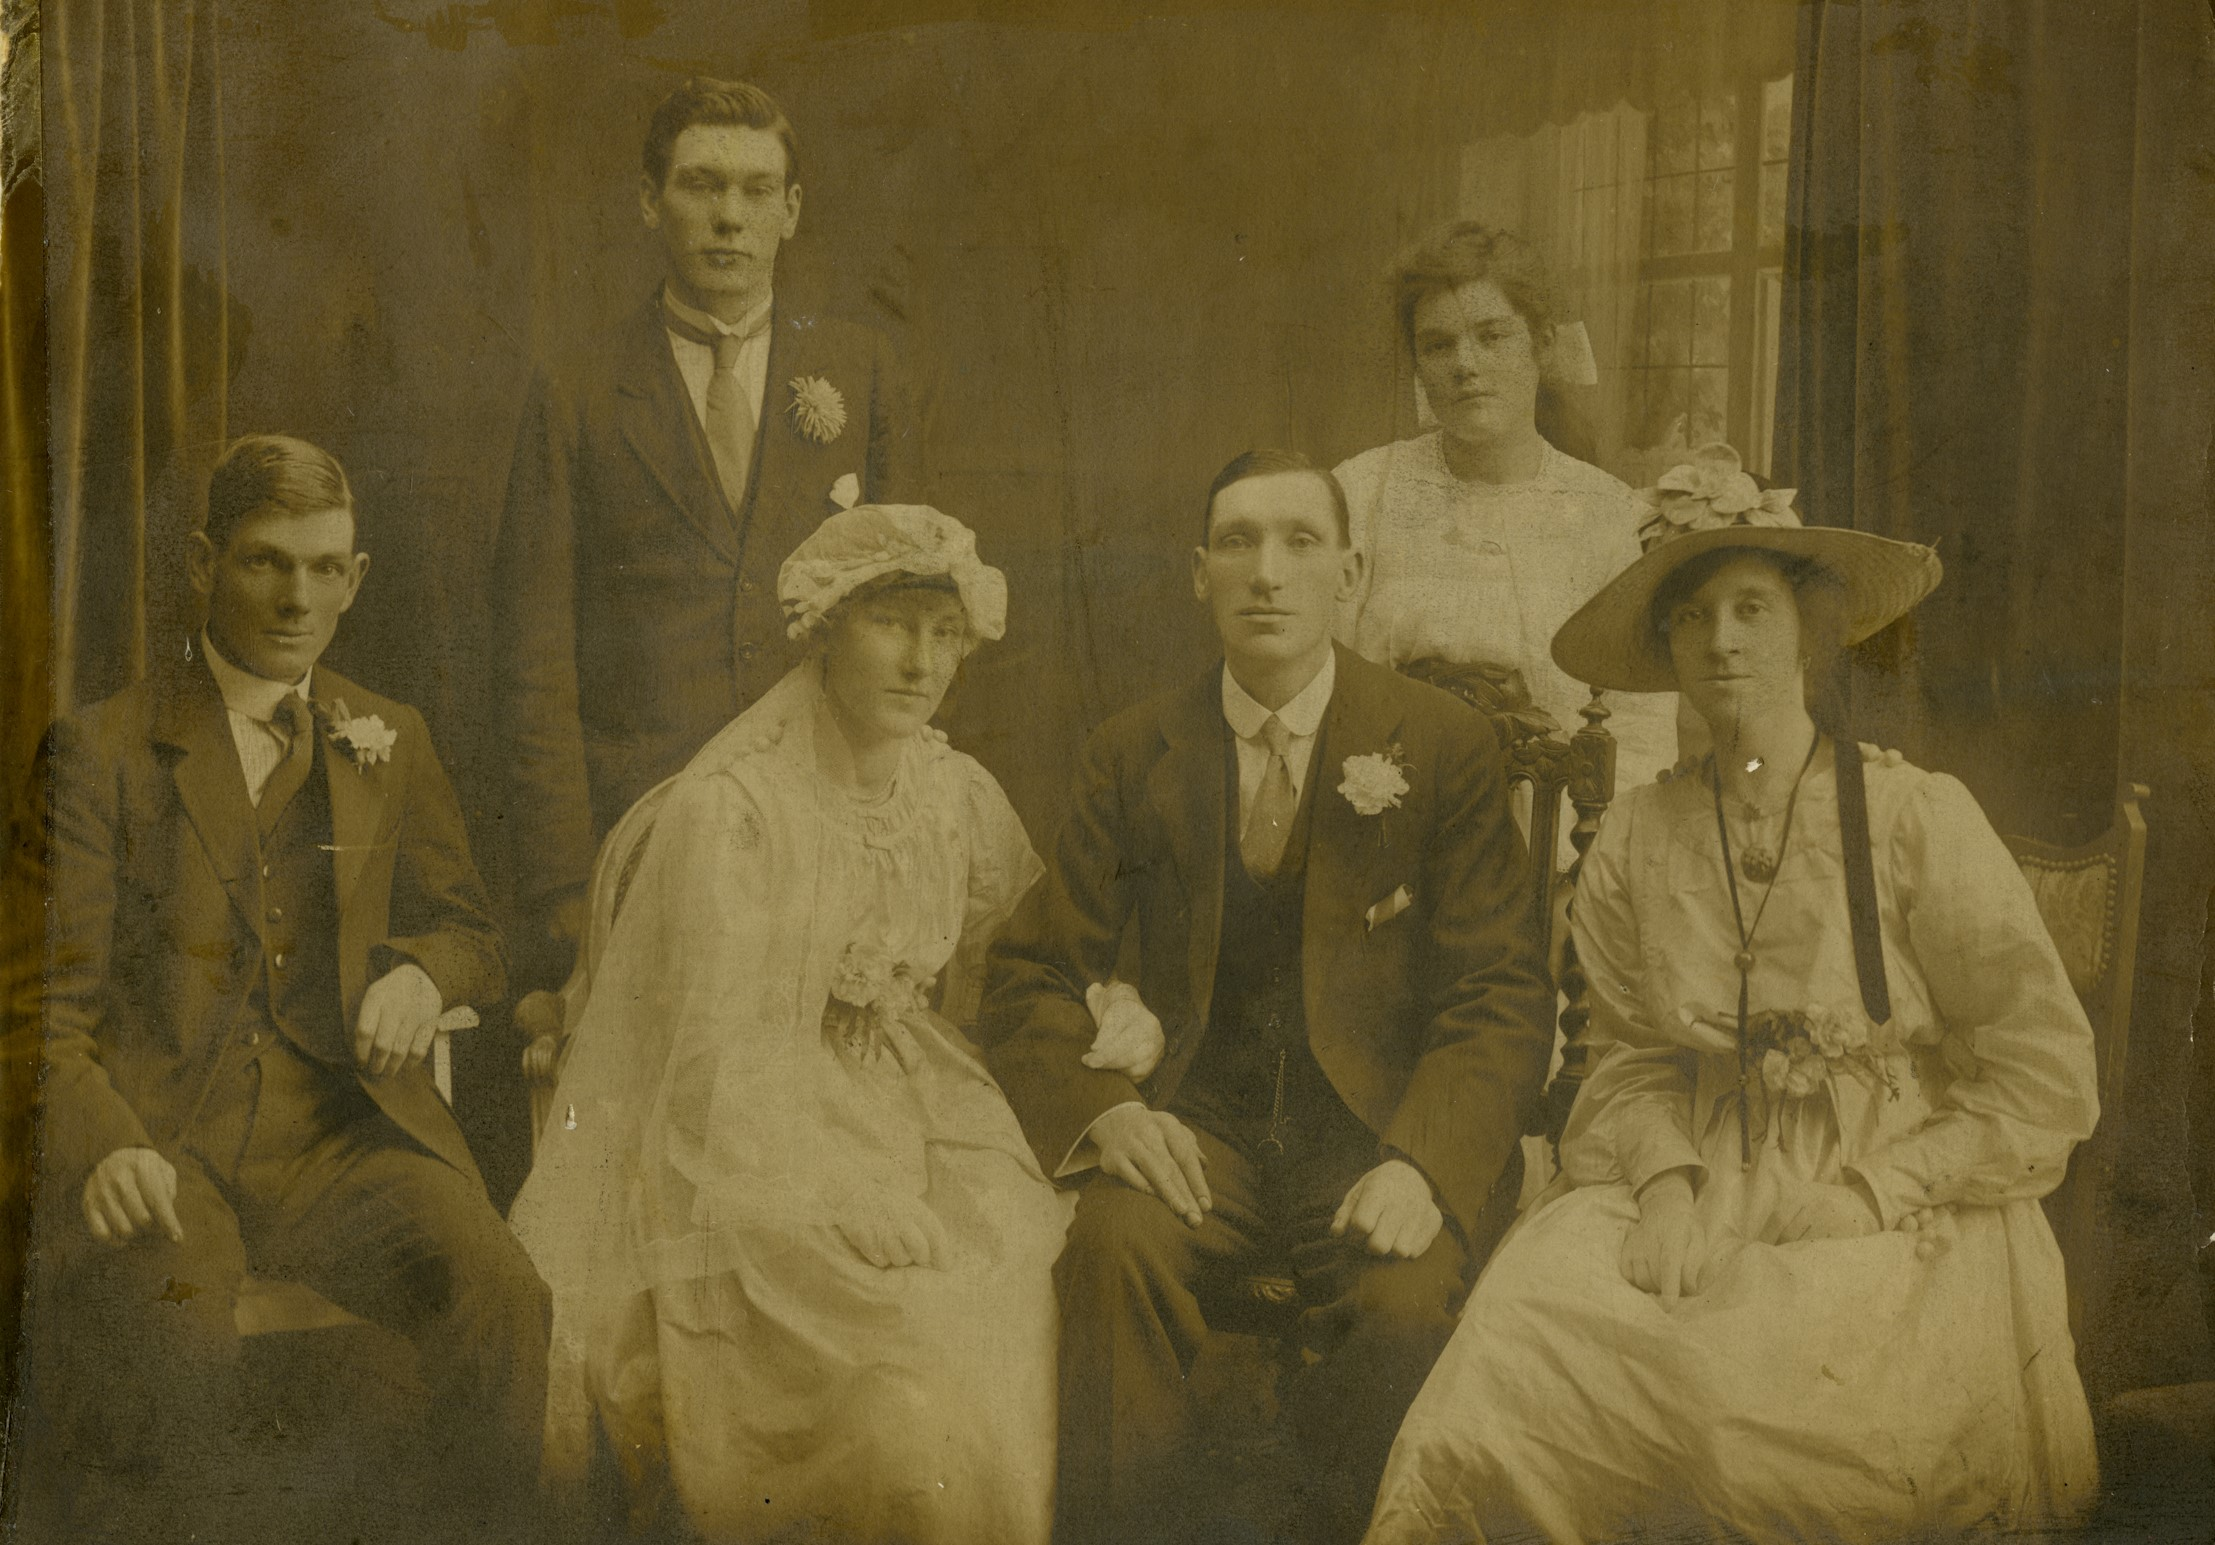 Wedding of Christine Caffrey to James Keeley